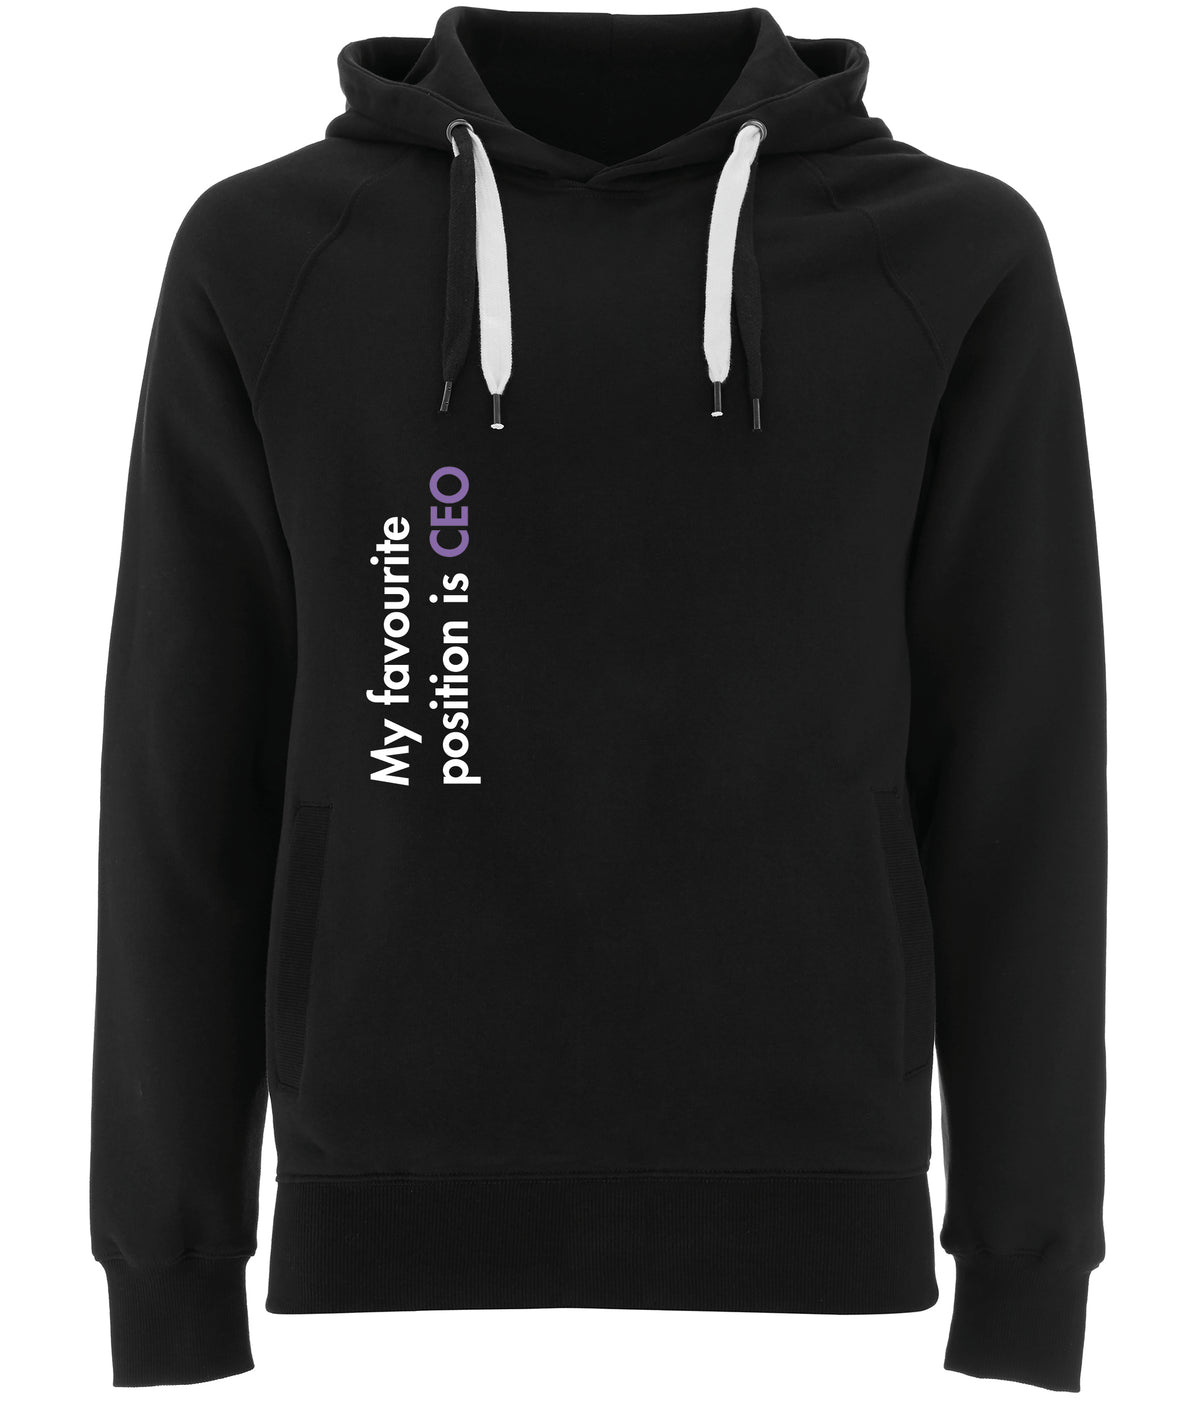 My Favourite Position Is CEO Organic Combed Cotton Hoodie Black